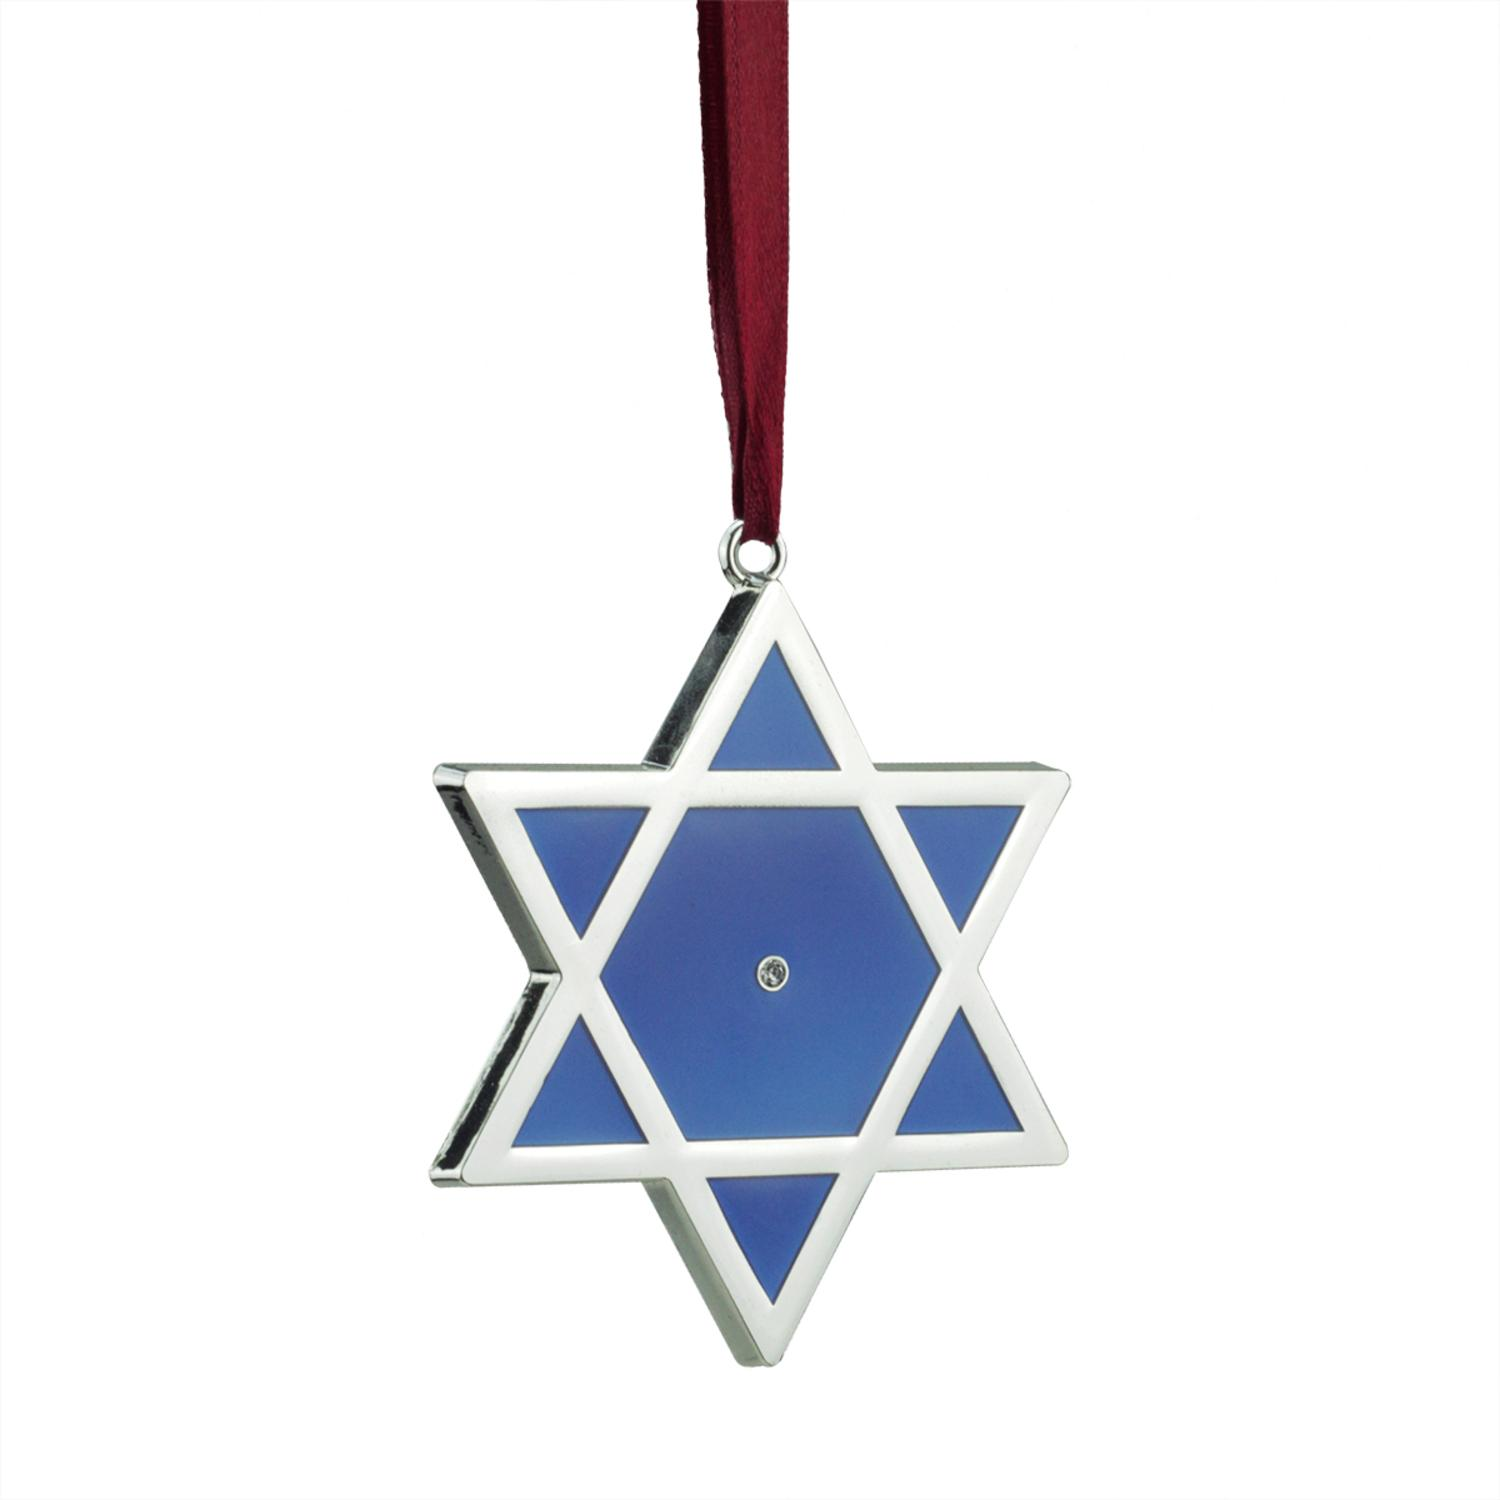 ''3'''' Regal Shiny Silver-Plated Blue Star of David Hanukkah HOLIDAY Ornament with European Crystal''